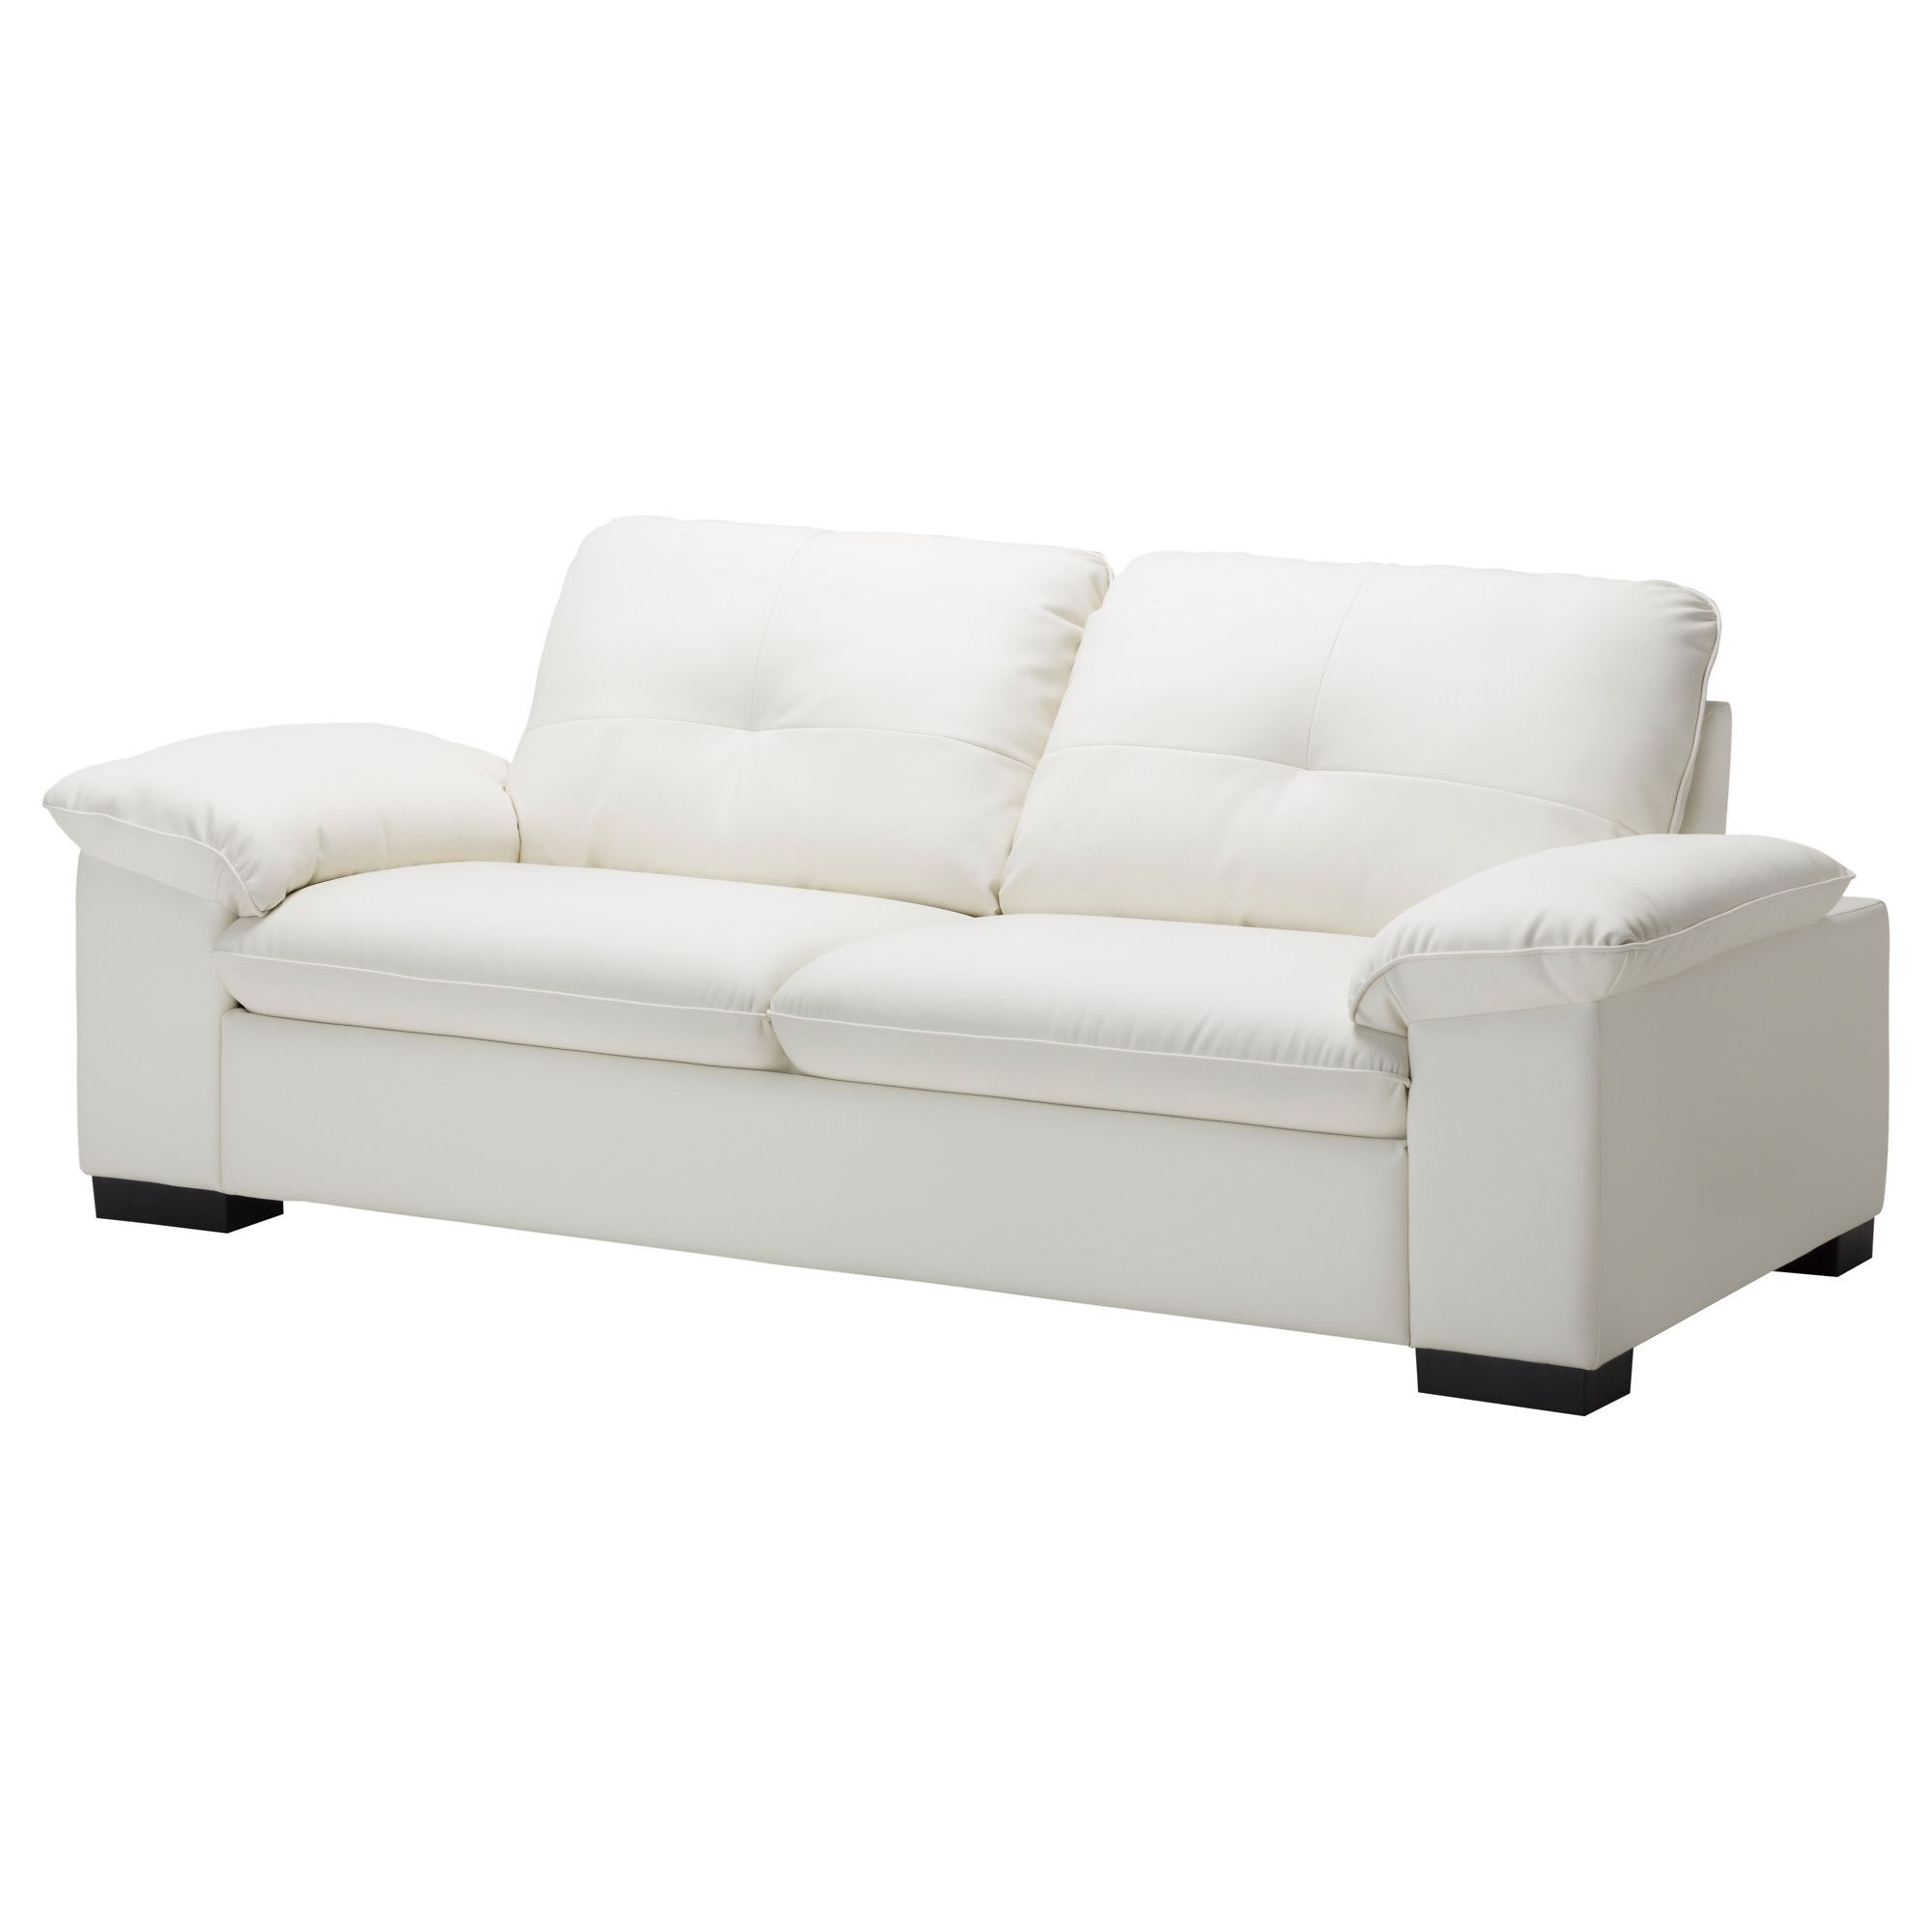 DAGSTORP Sofa Laglig white IKEA home at sea